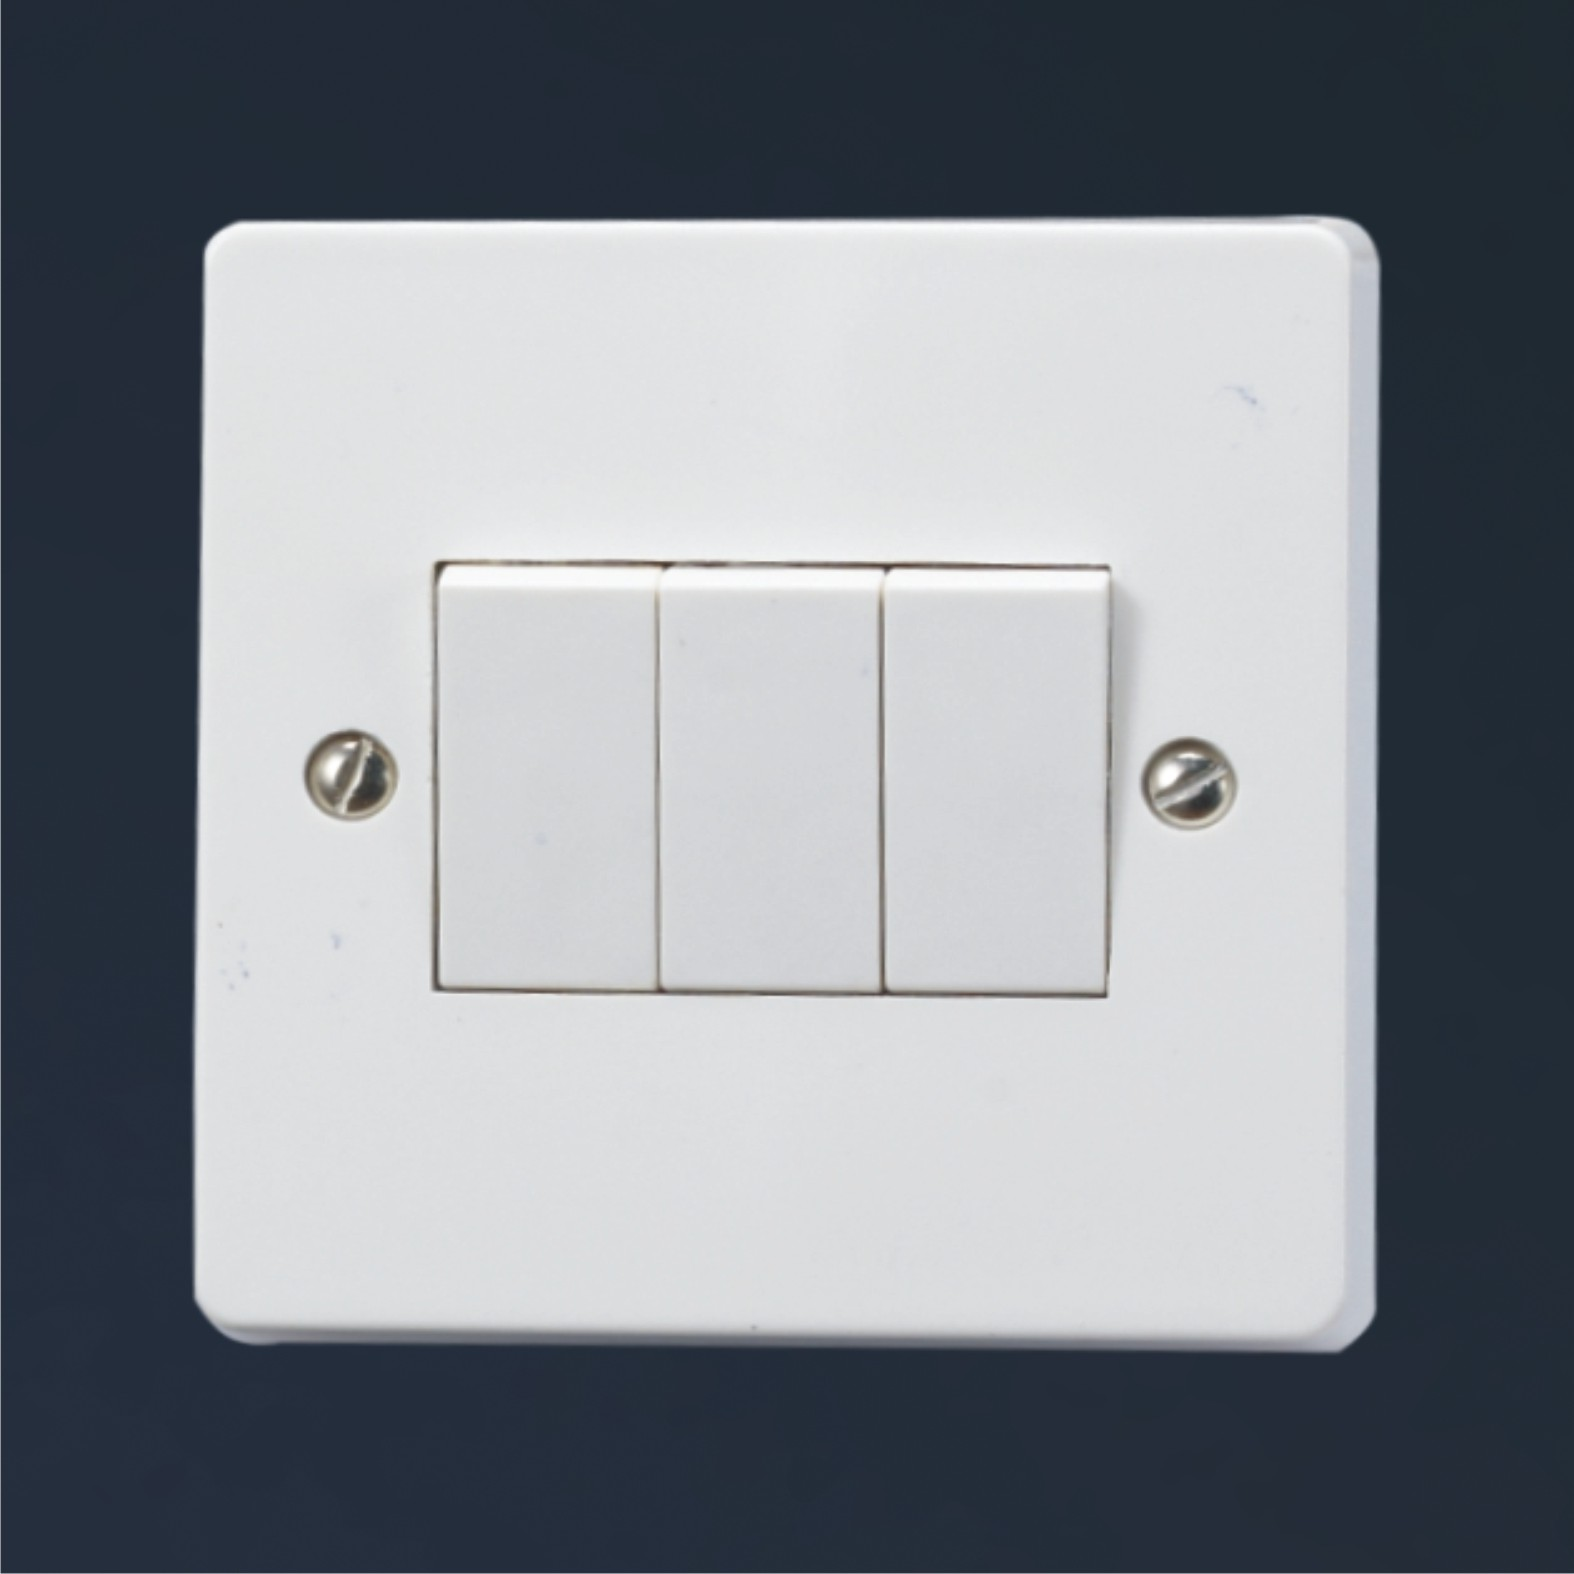 Wall Lighting Fixtures With On Off Switch : TOP 10 Wall light switches of 2017 Warisan Lighting